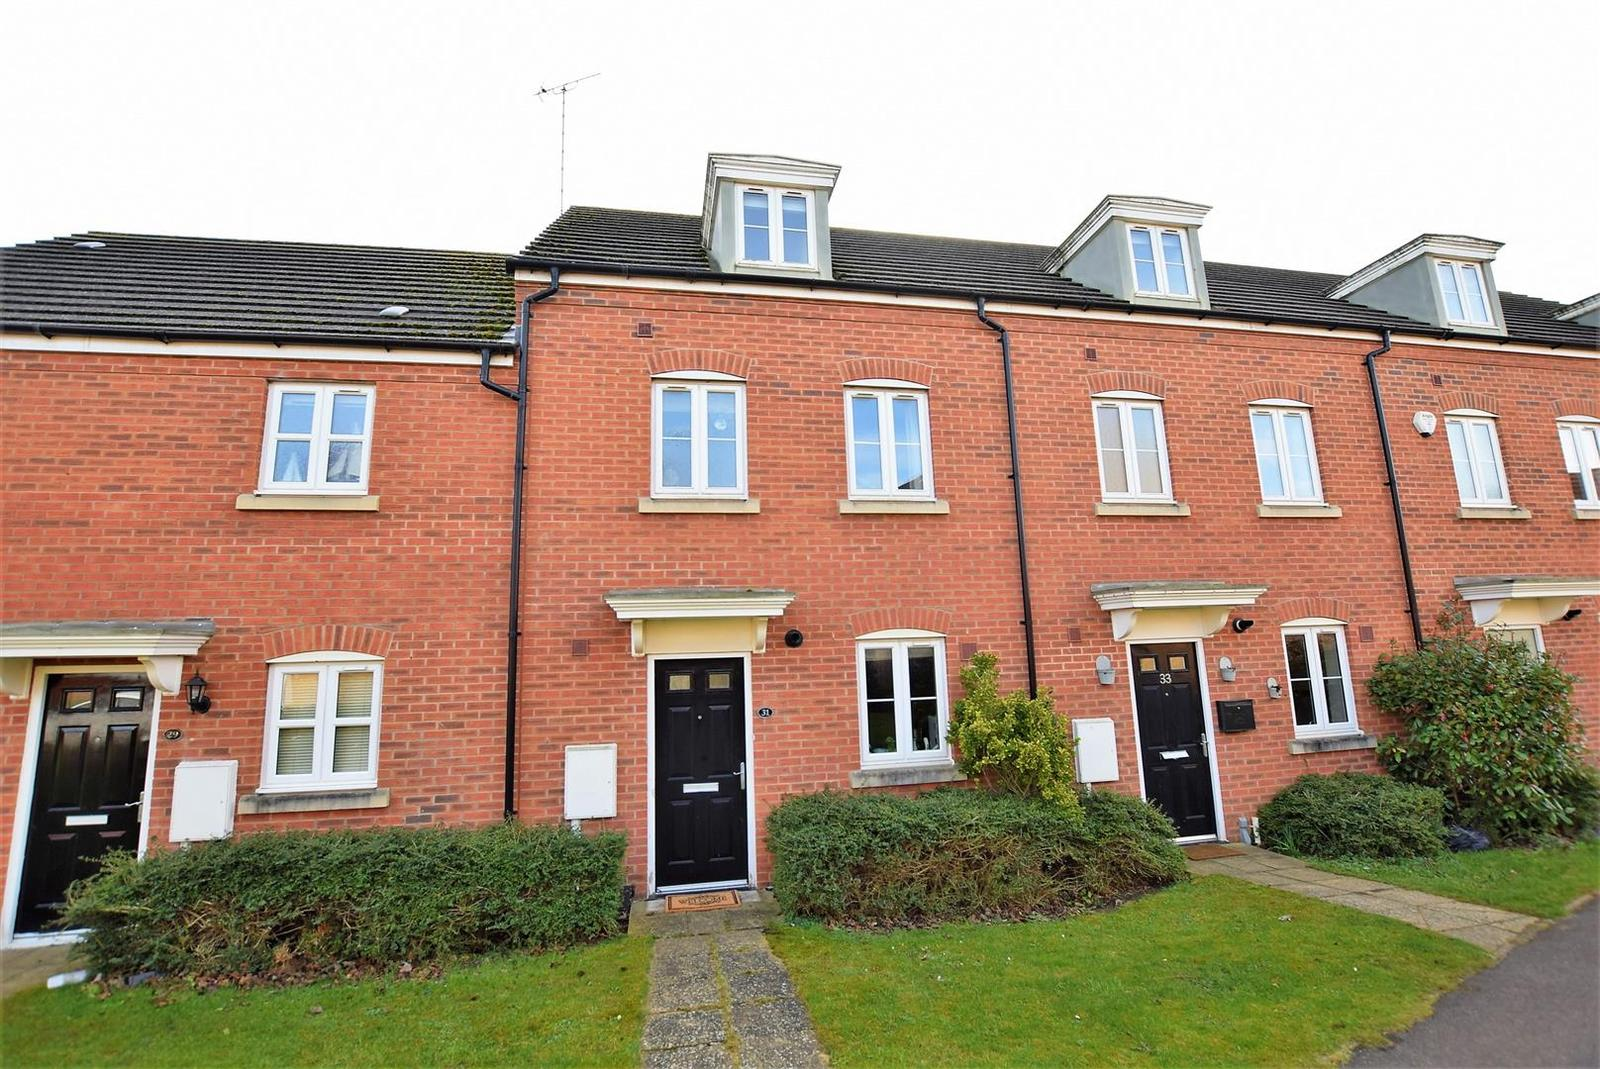 3 Bedrooms Terraced House for sale in Banks Crescent, Stamford